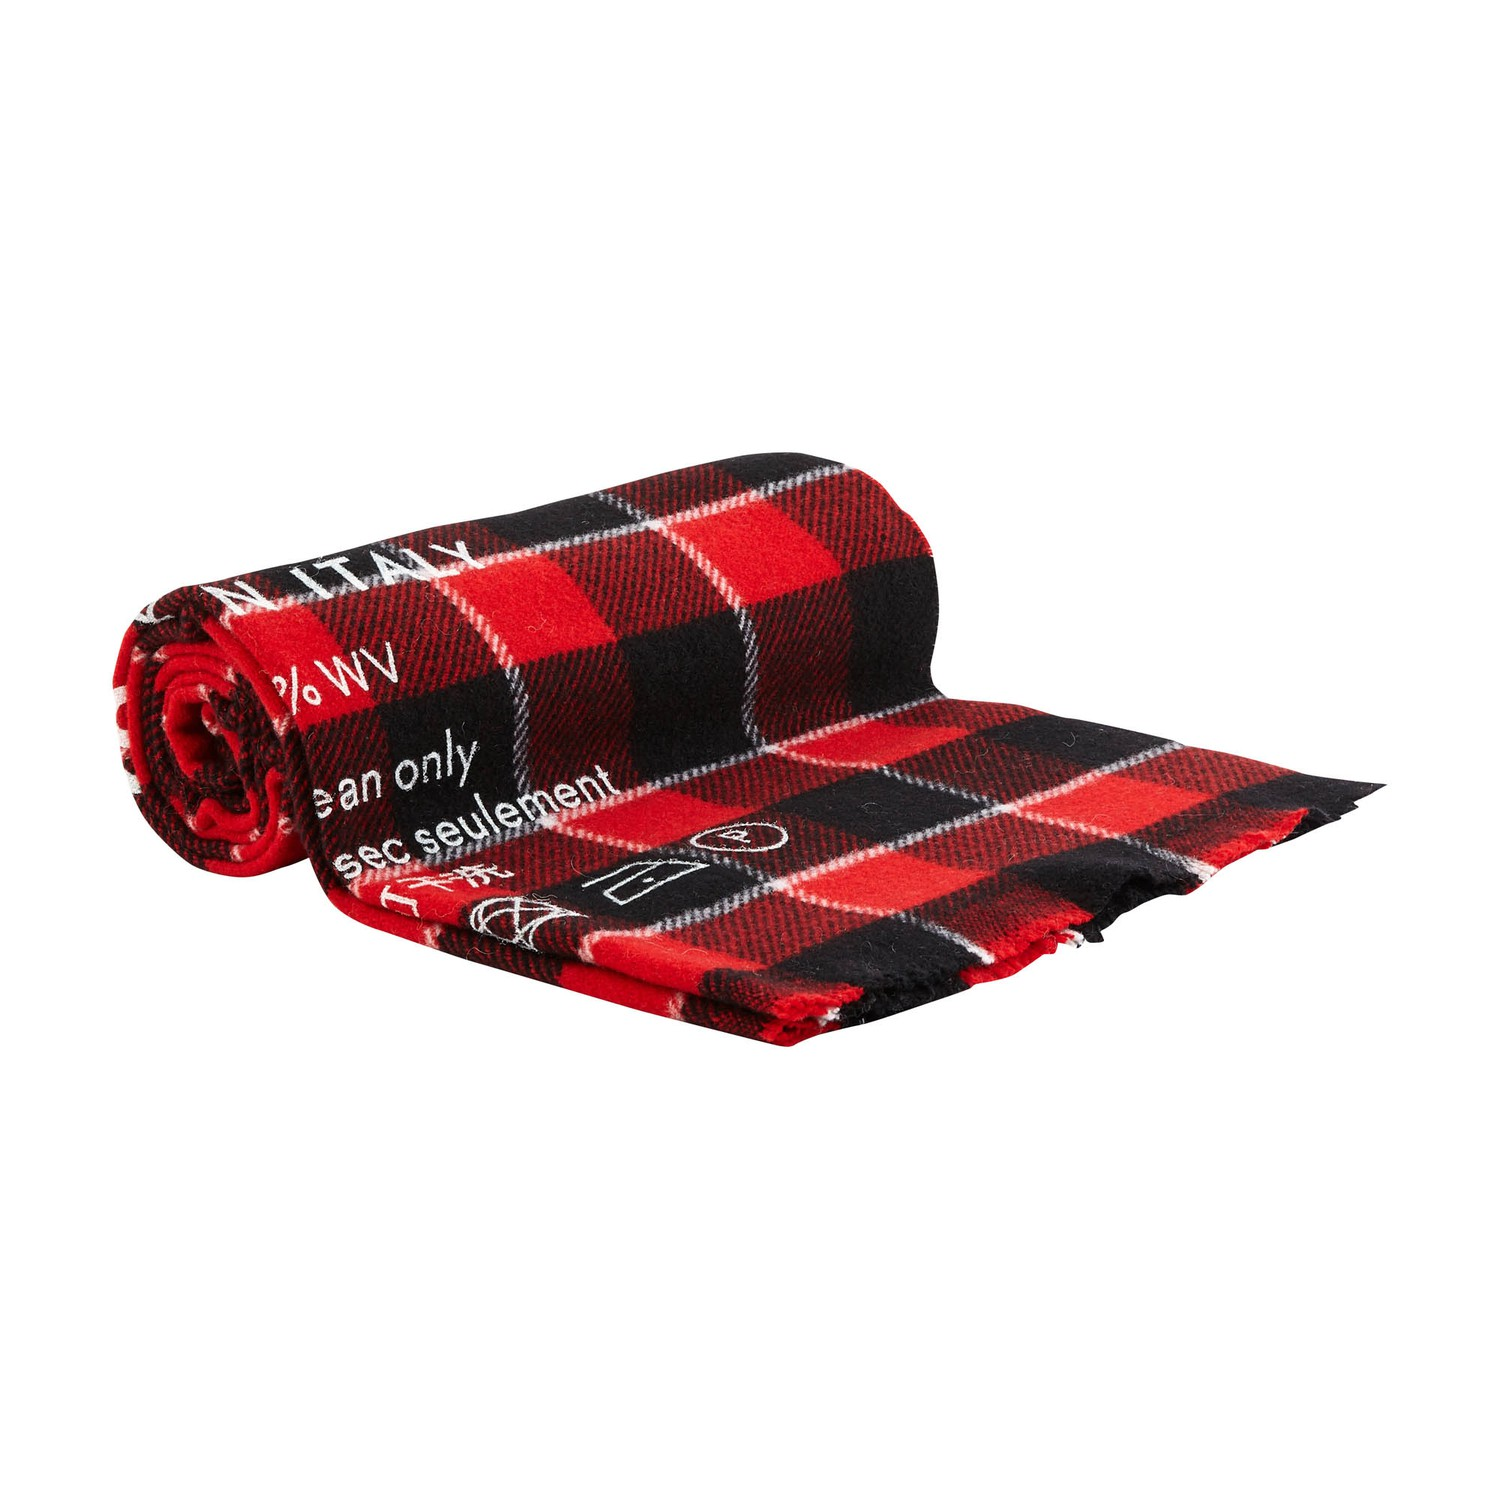 Acne Studios Cassiar Logo-print Checked Wool Scarf In Red/black